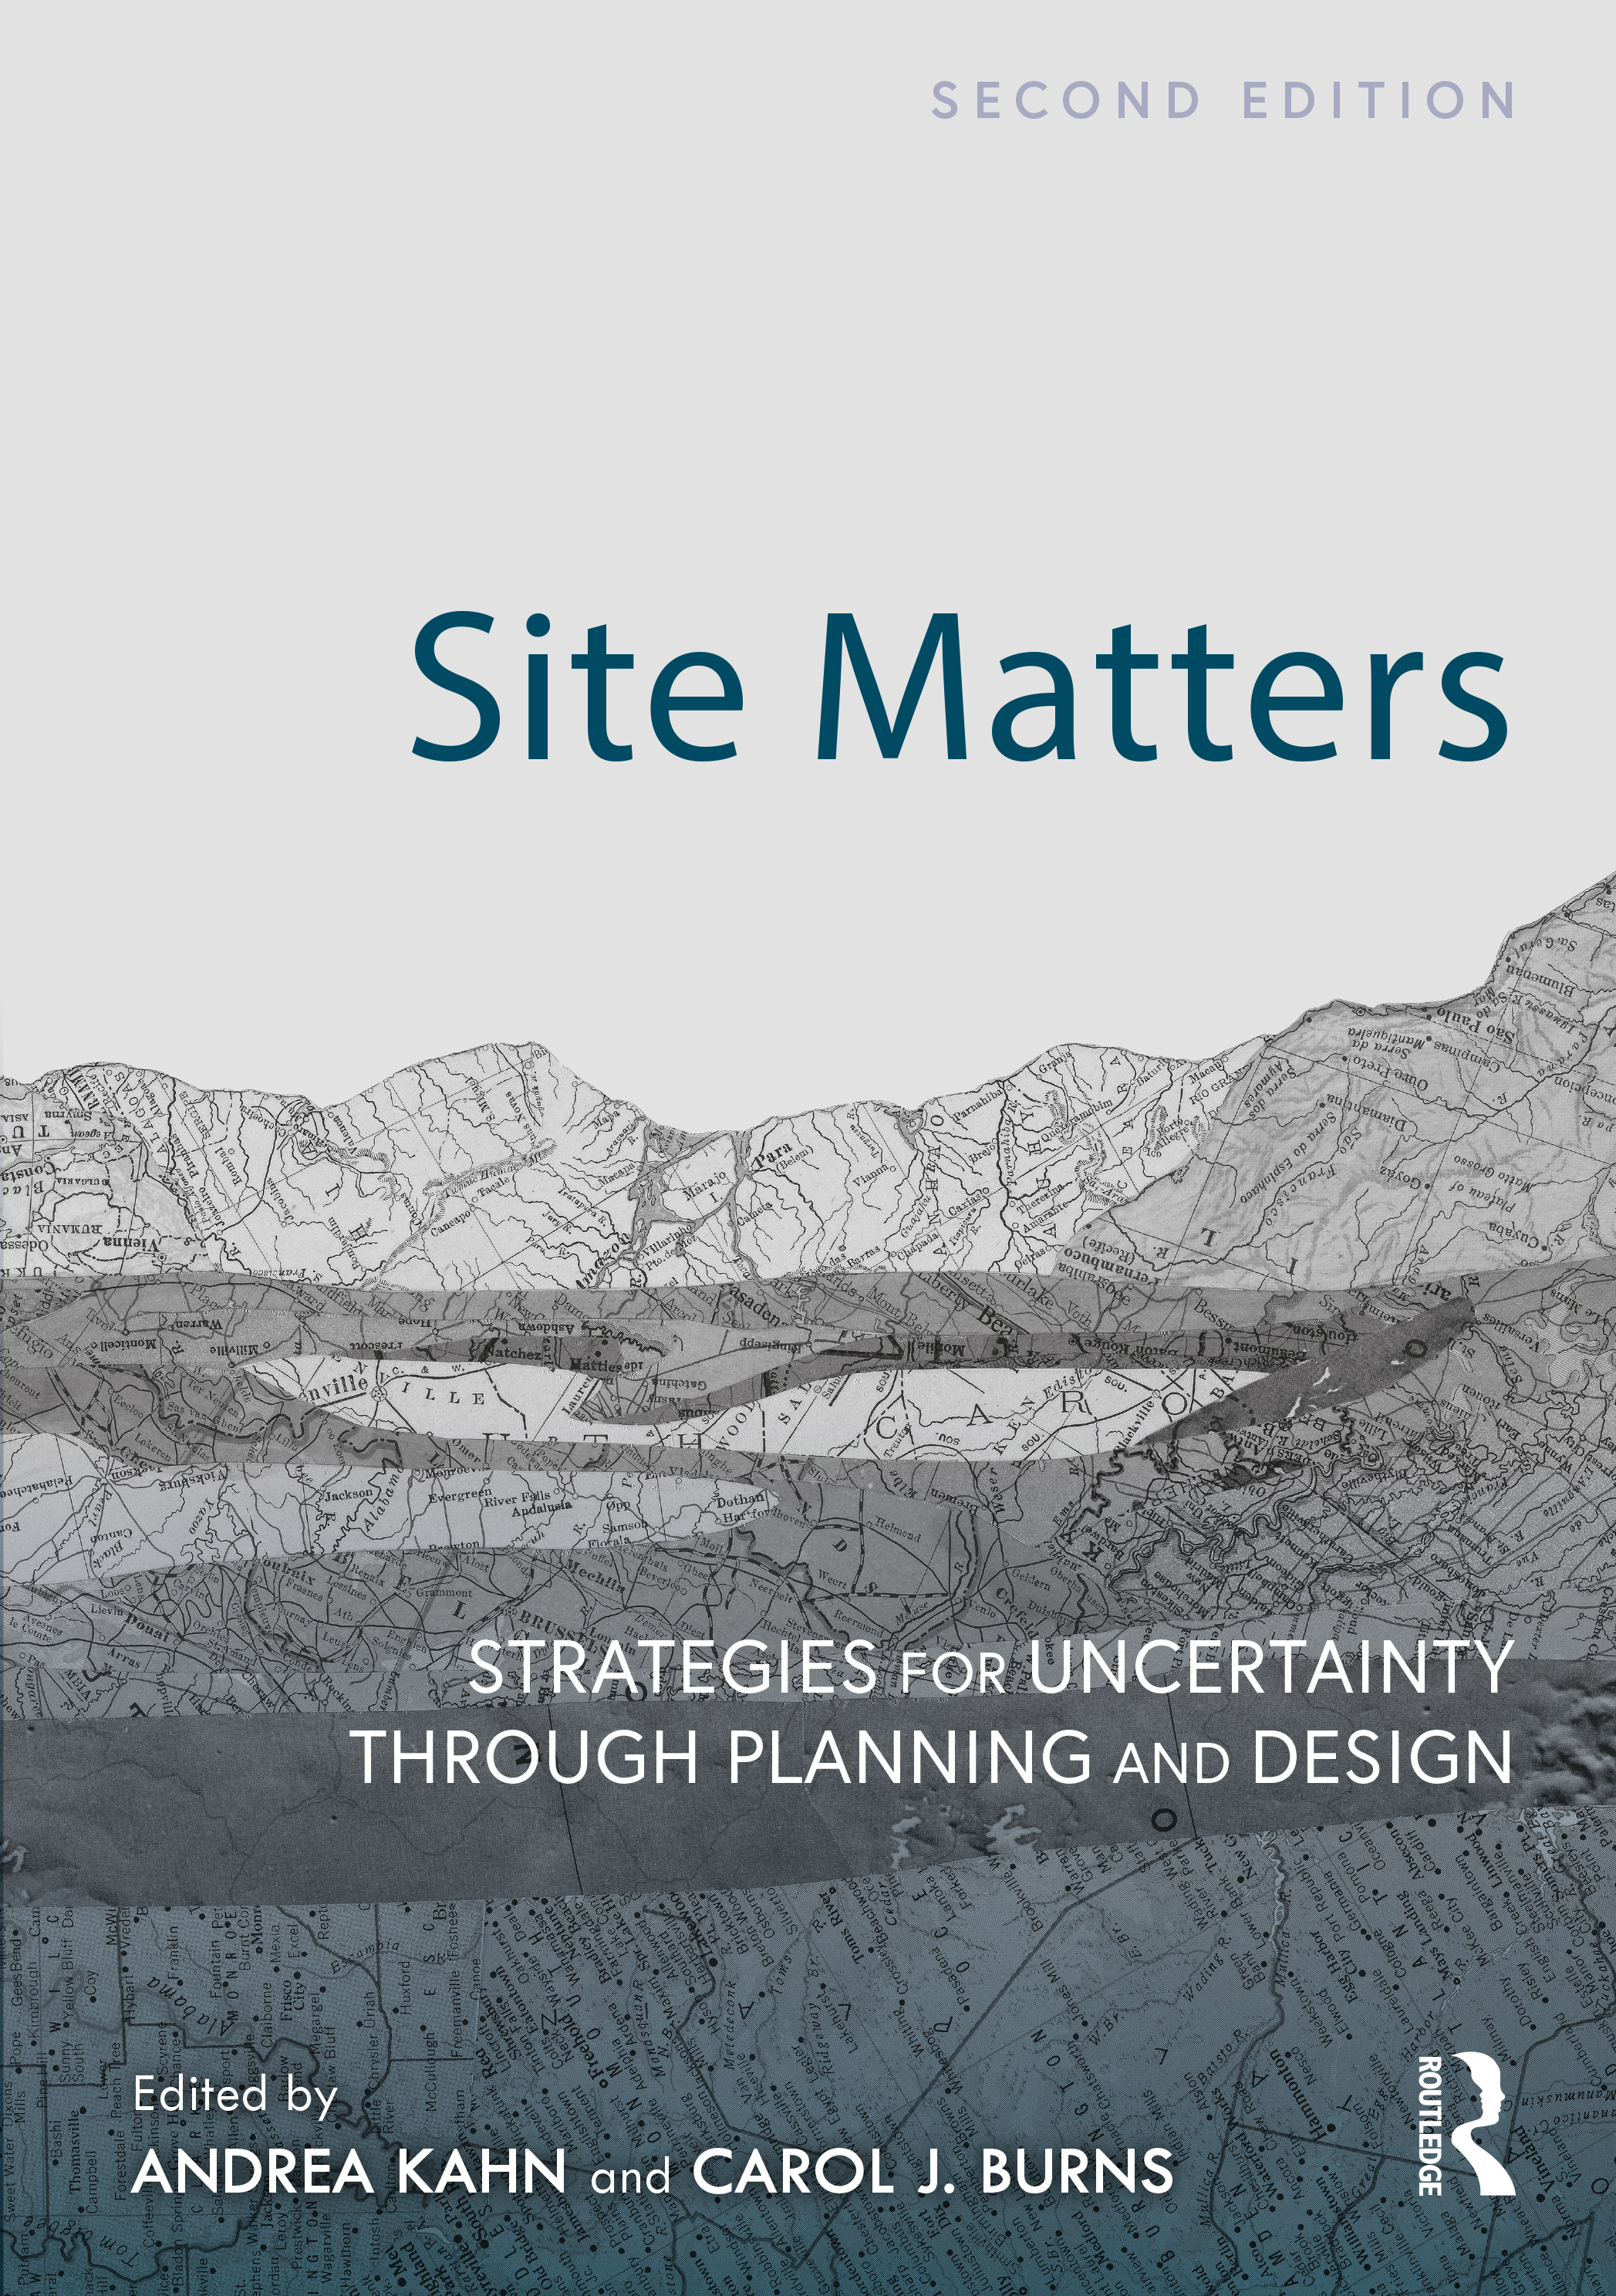 In the Anthropocene, Site Matters in Four Ways